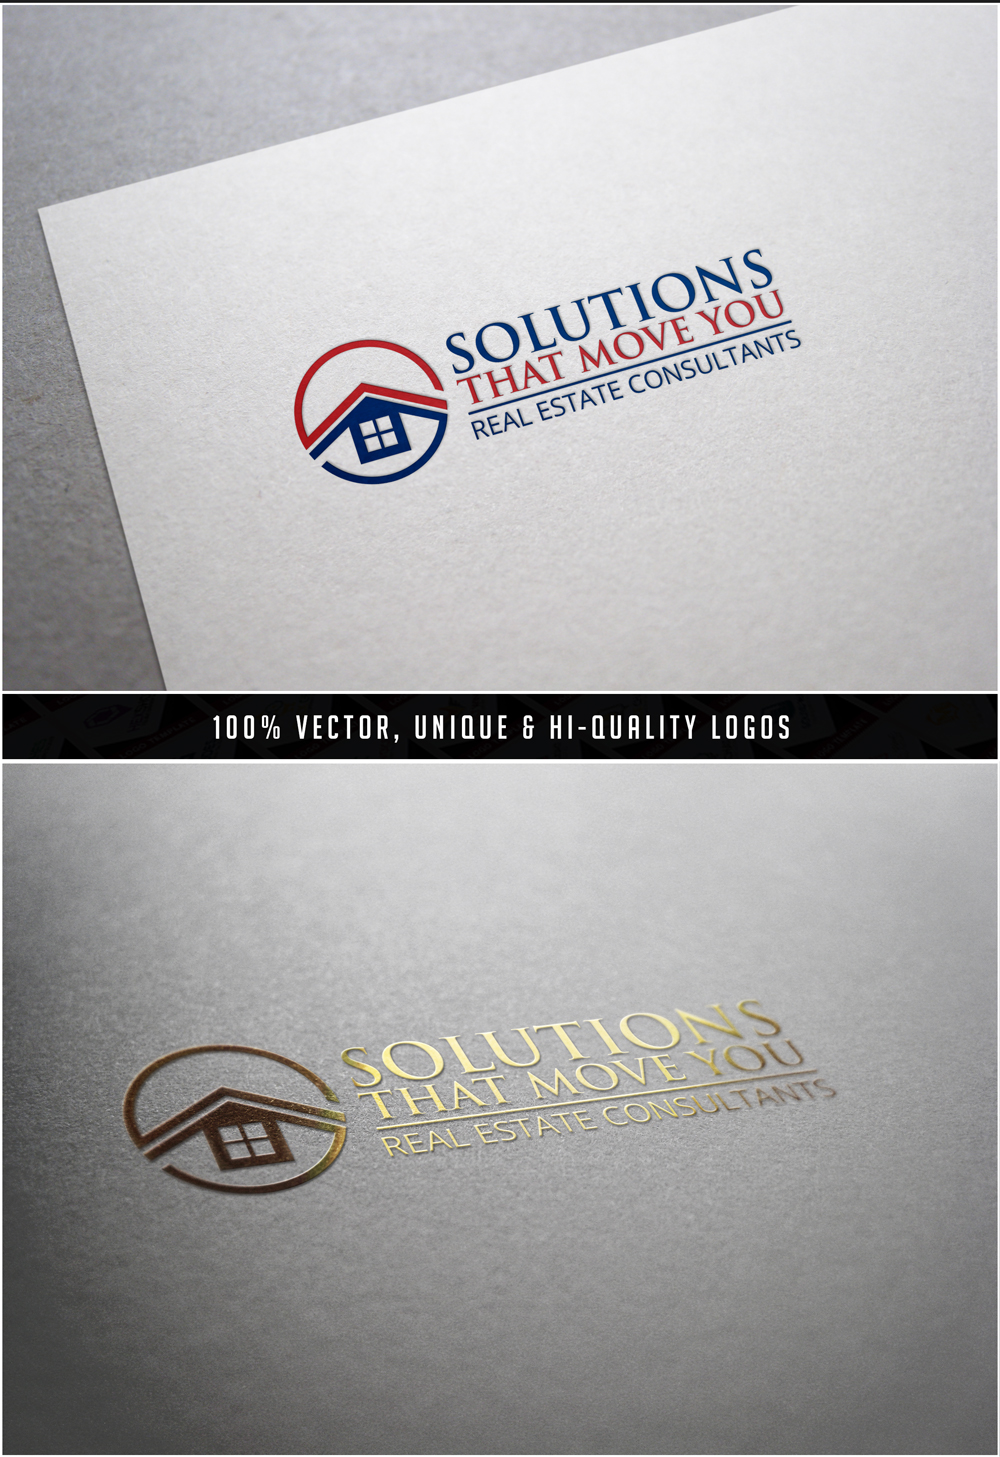 Logo Design by Virgilio Pineda III - Entry No. 111 in the Logo Design Contest Imaginative Logo Design for Solutions That Move You.